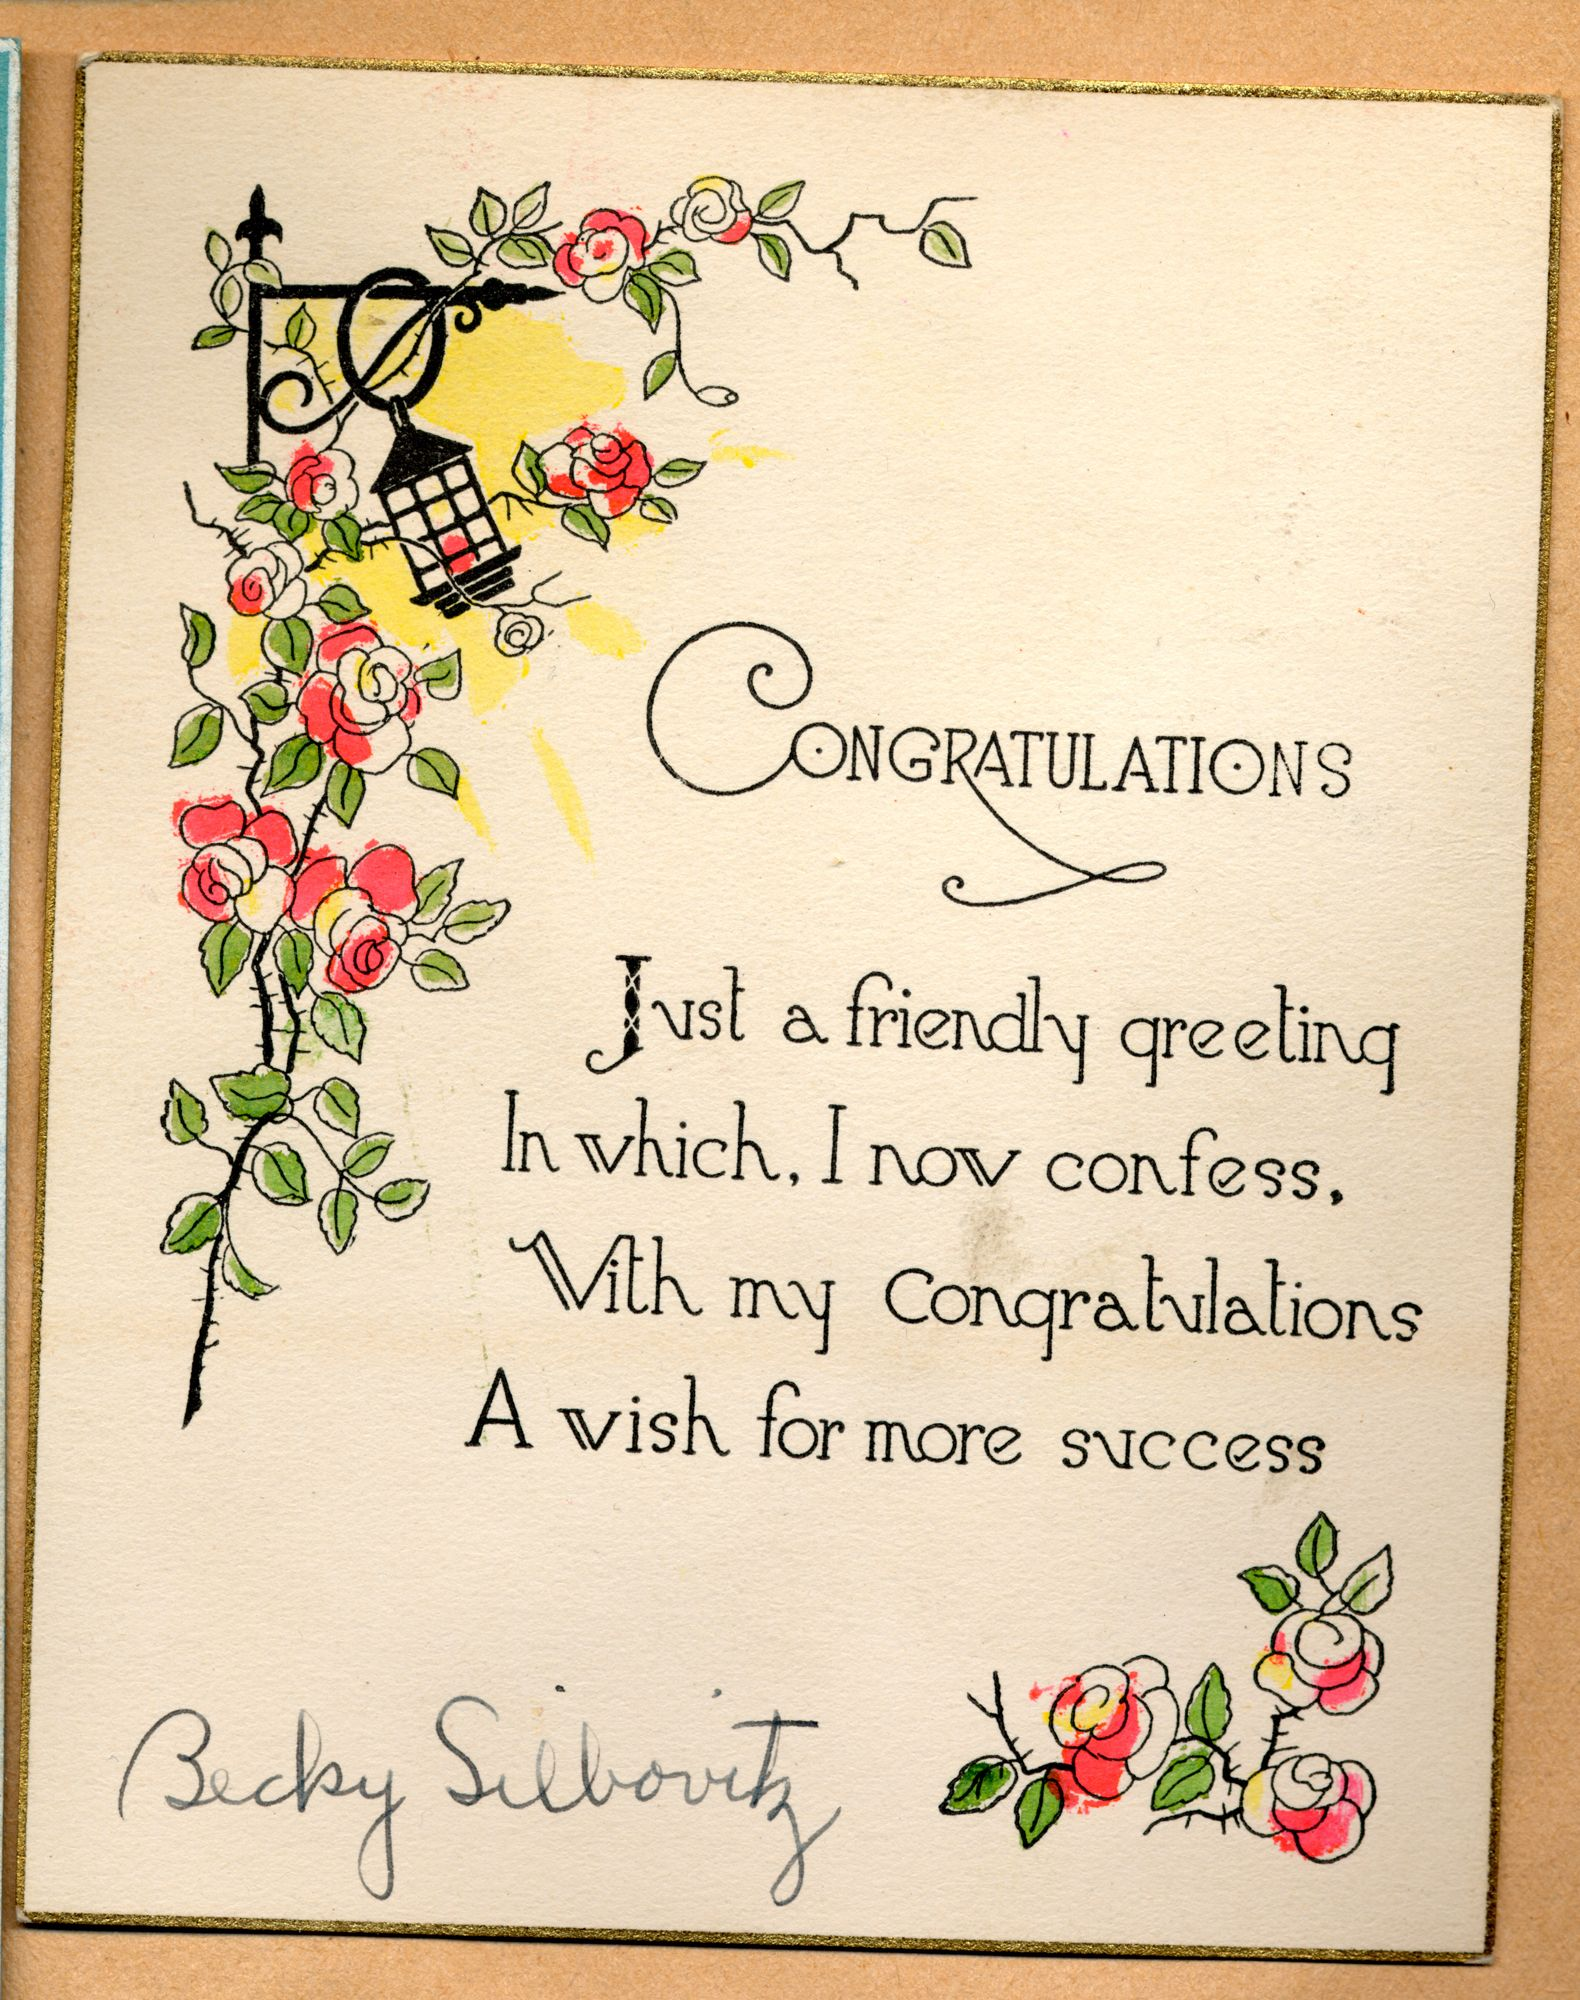 Graduation card cards pinterest graduation cards card party graduation card congratulations kristyandbryce Gallery